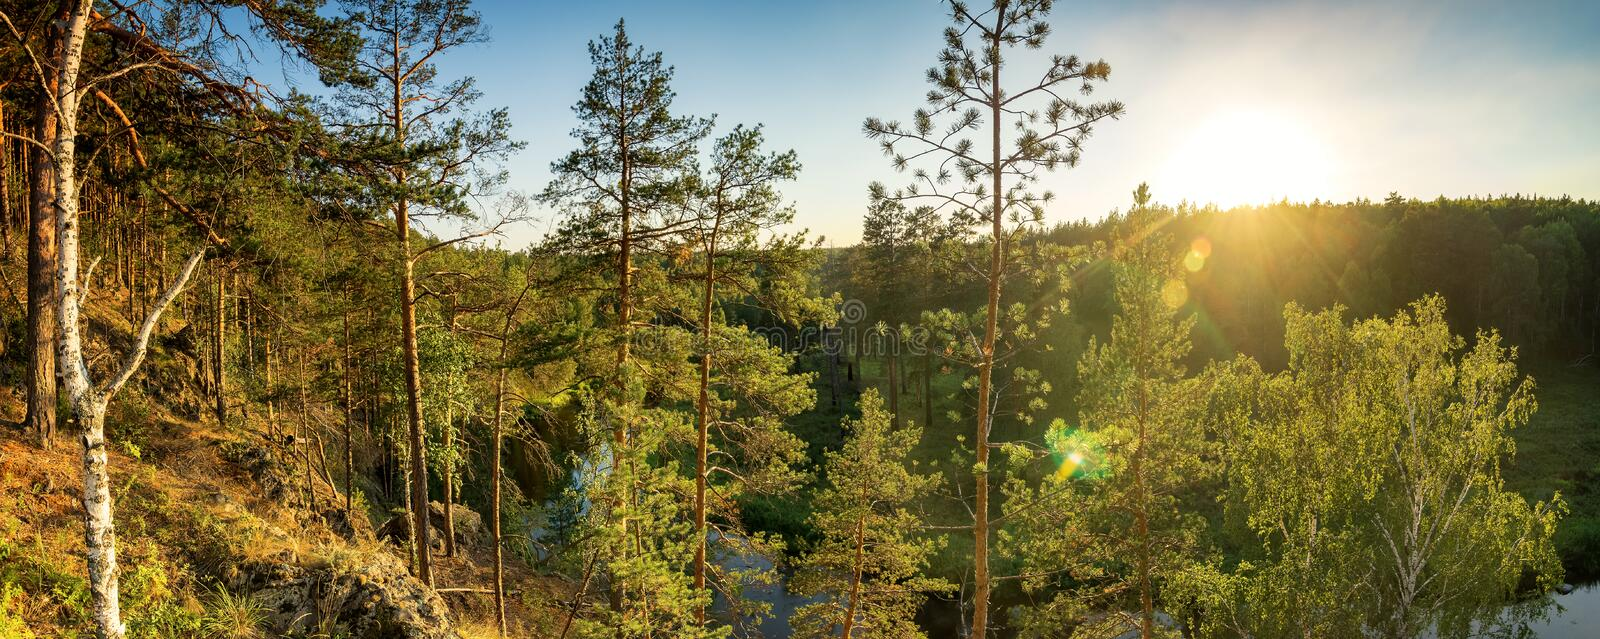 Forest landscape with a river and a rocky shore Sunny day, Russia, the Urals royalty free stock image